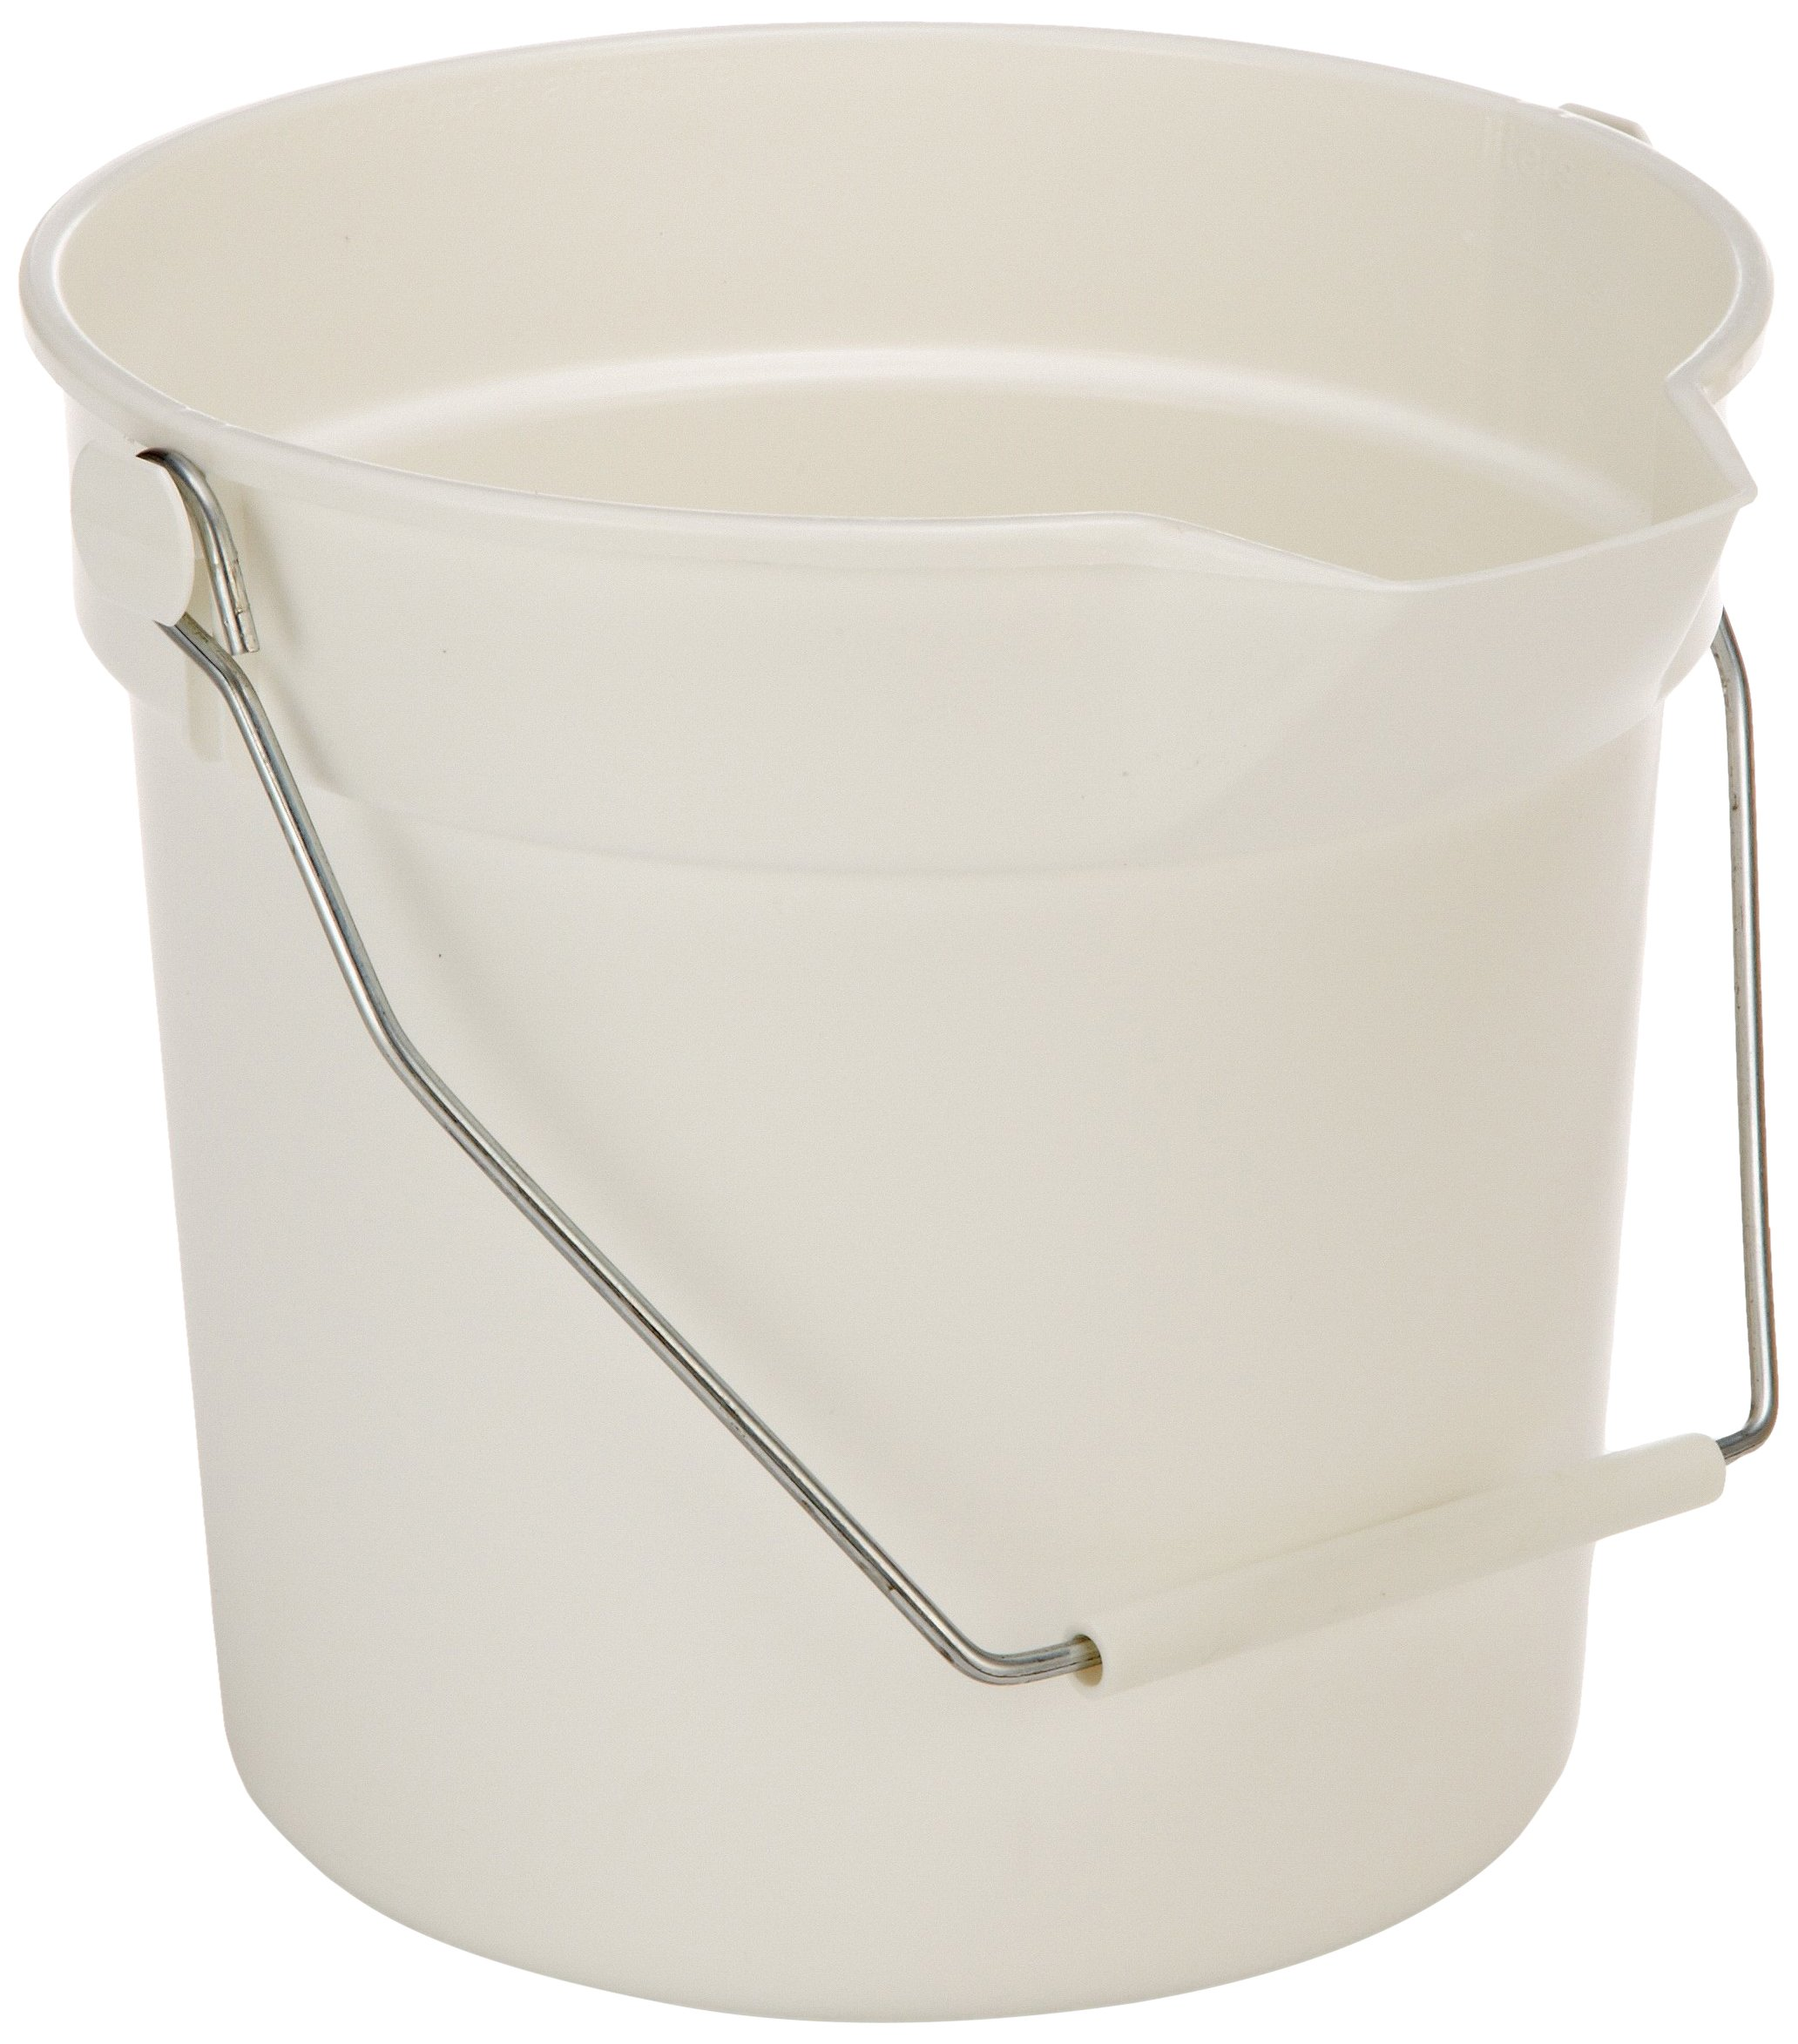 Impact 5510W High Density Polypropylene Deluxe Heavy-Duty Bucket, 10 qt Capacity, 10-1/4'' Length x 10-5/8'' Height, White (Case of 12)